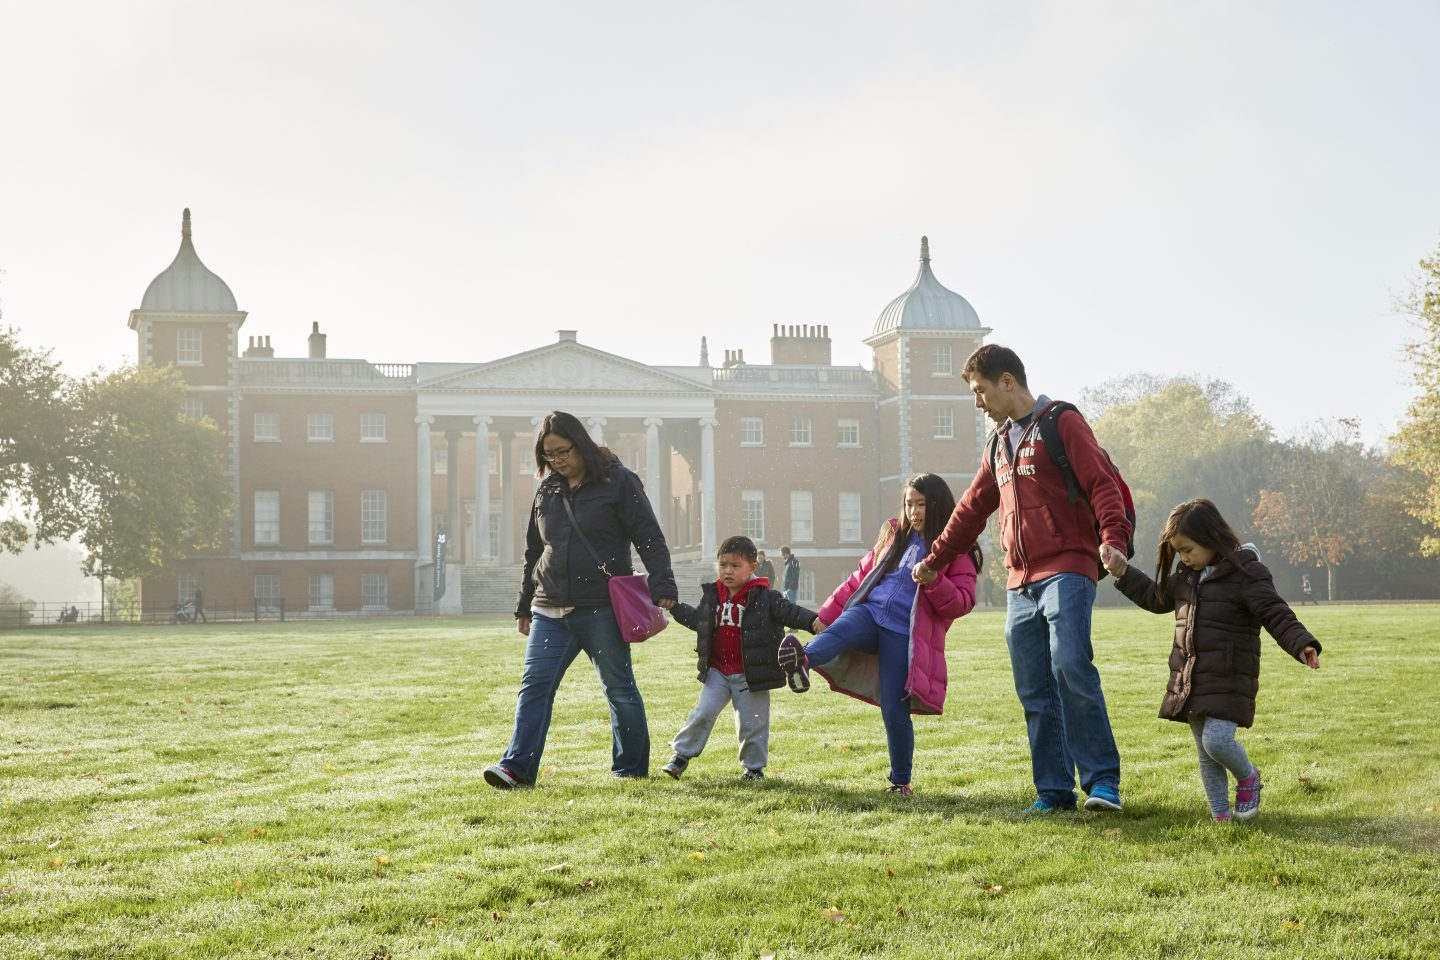 A family walking in the grounds at Osterley Park and House, London. just off the motorway m4